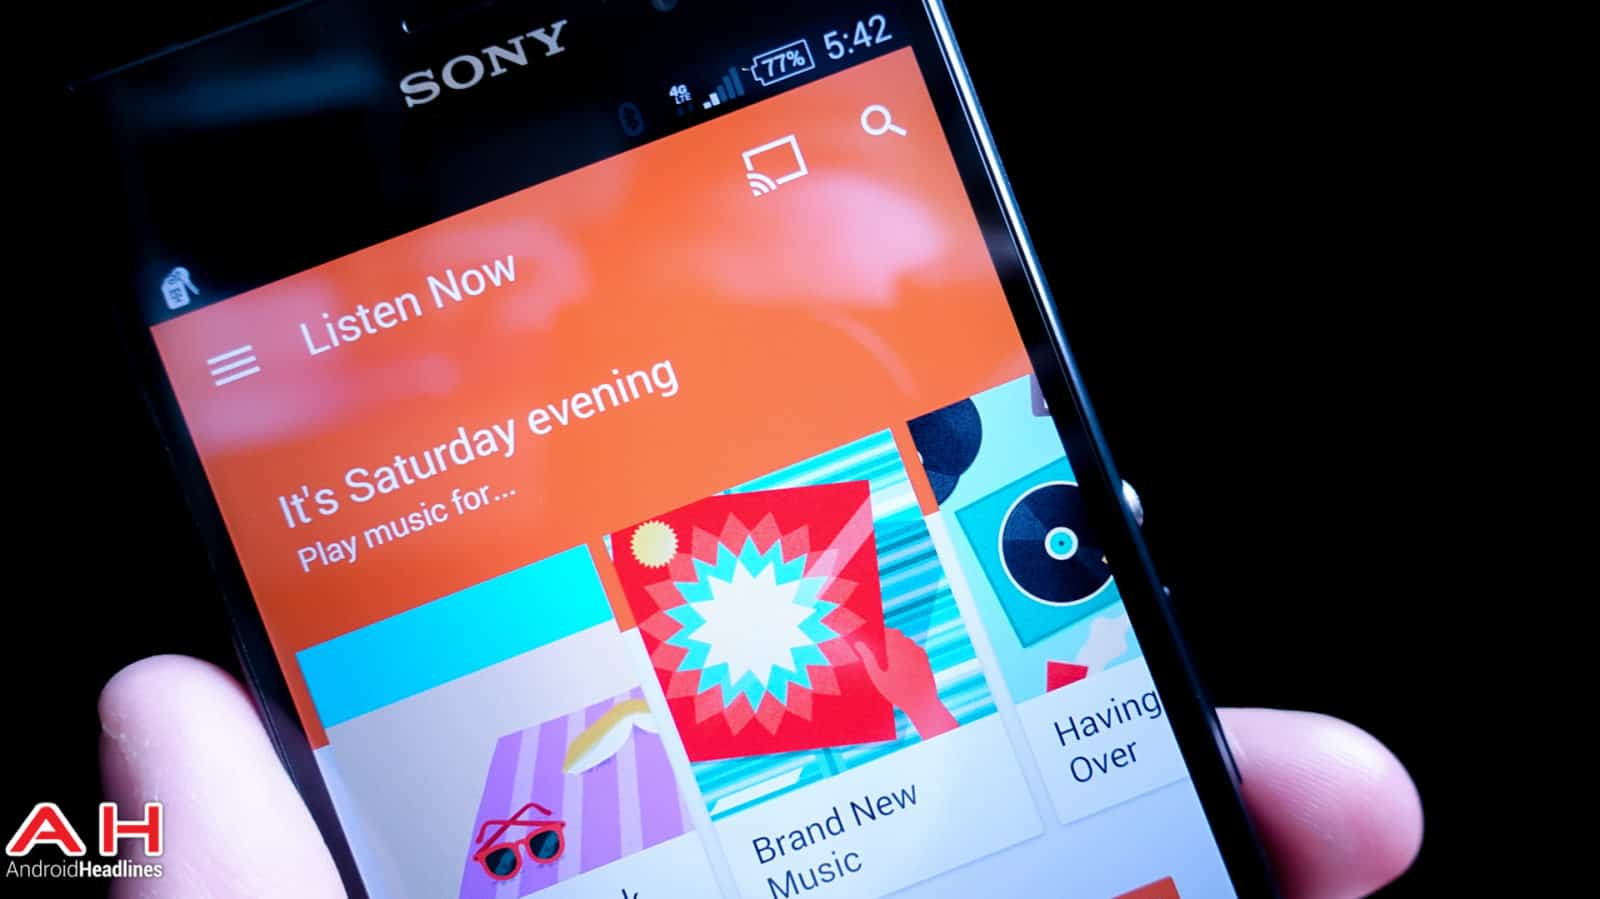 Google Offering Play Music All Access for $1/Month for First 3 Months to  New Customers